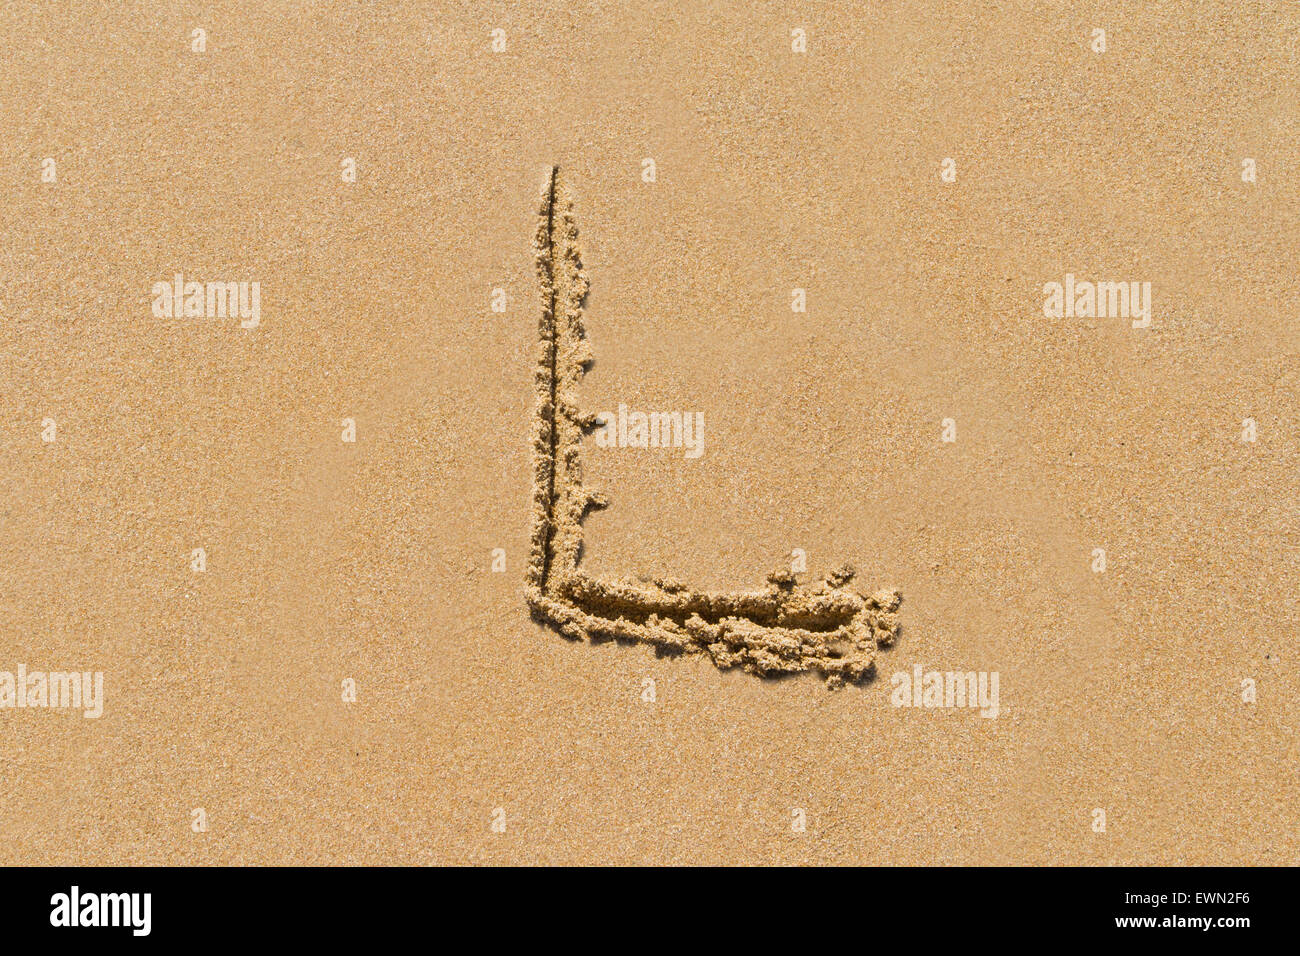 Letter L of the alphabet written on sand with upper case. - Stock Image